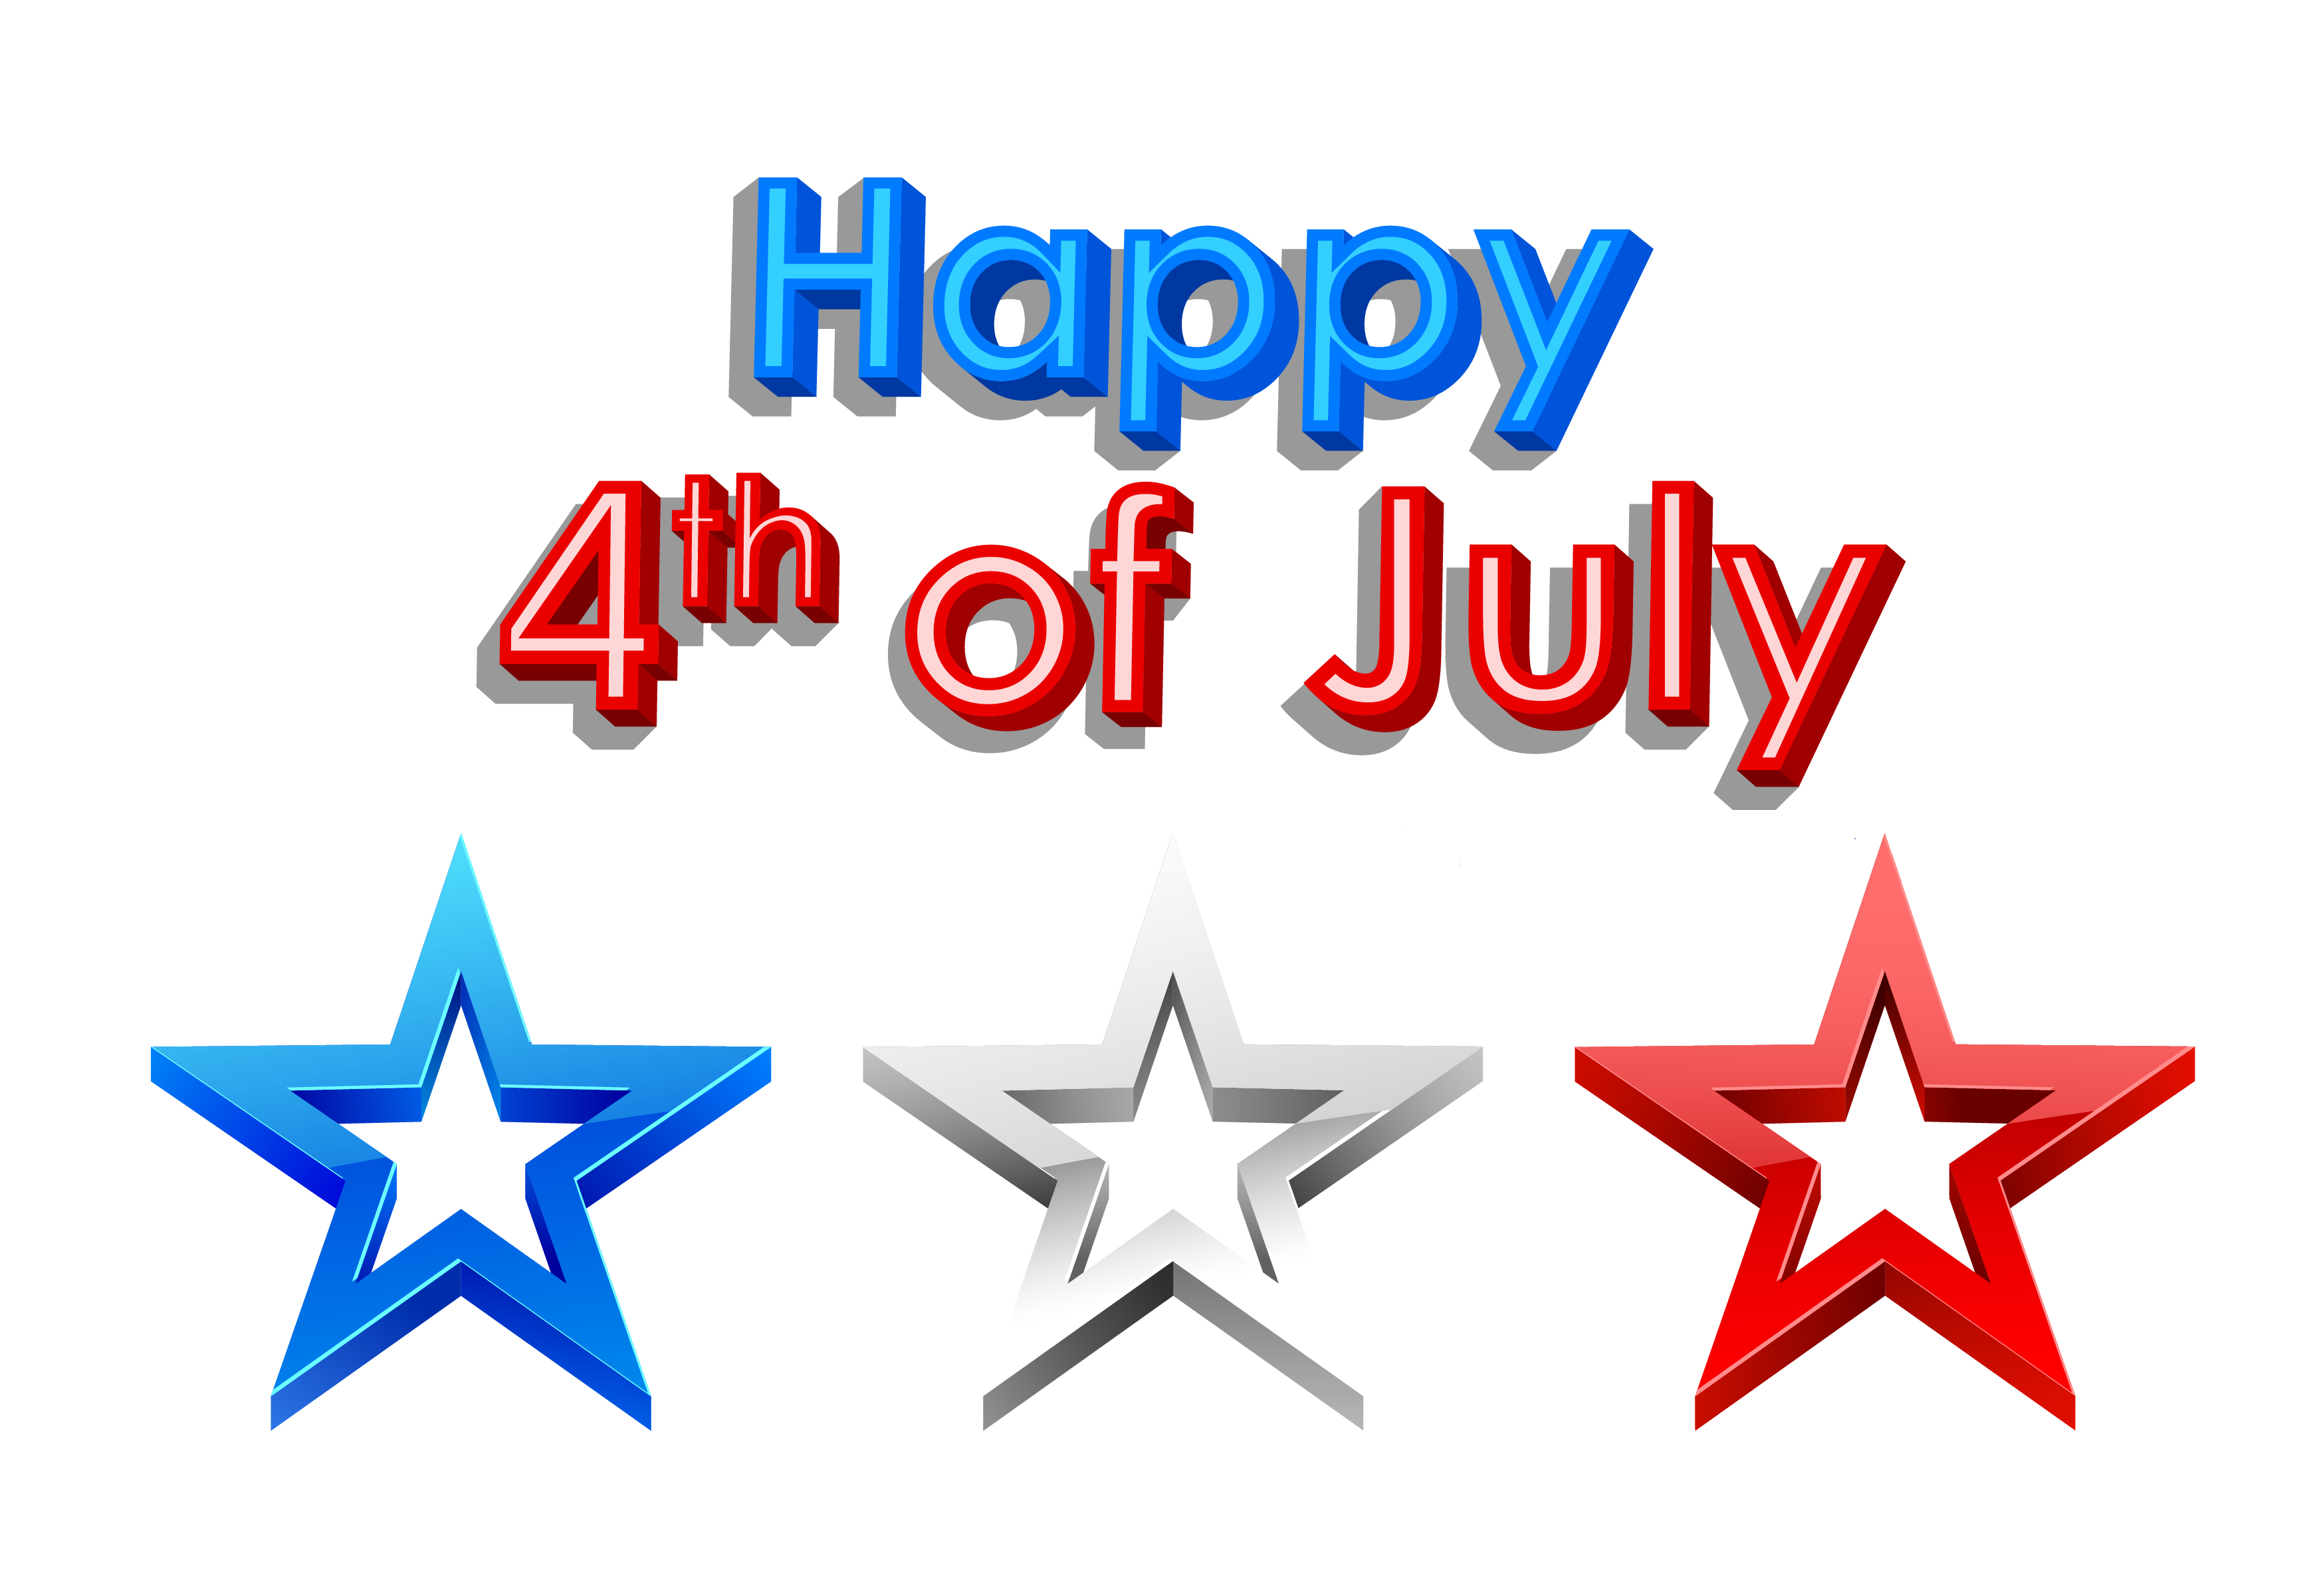 4th Of July Free Clip Art - ClipArt Best